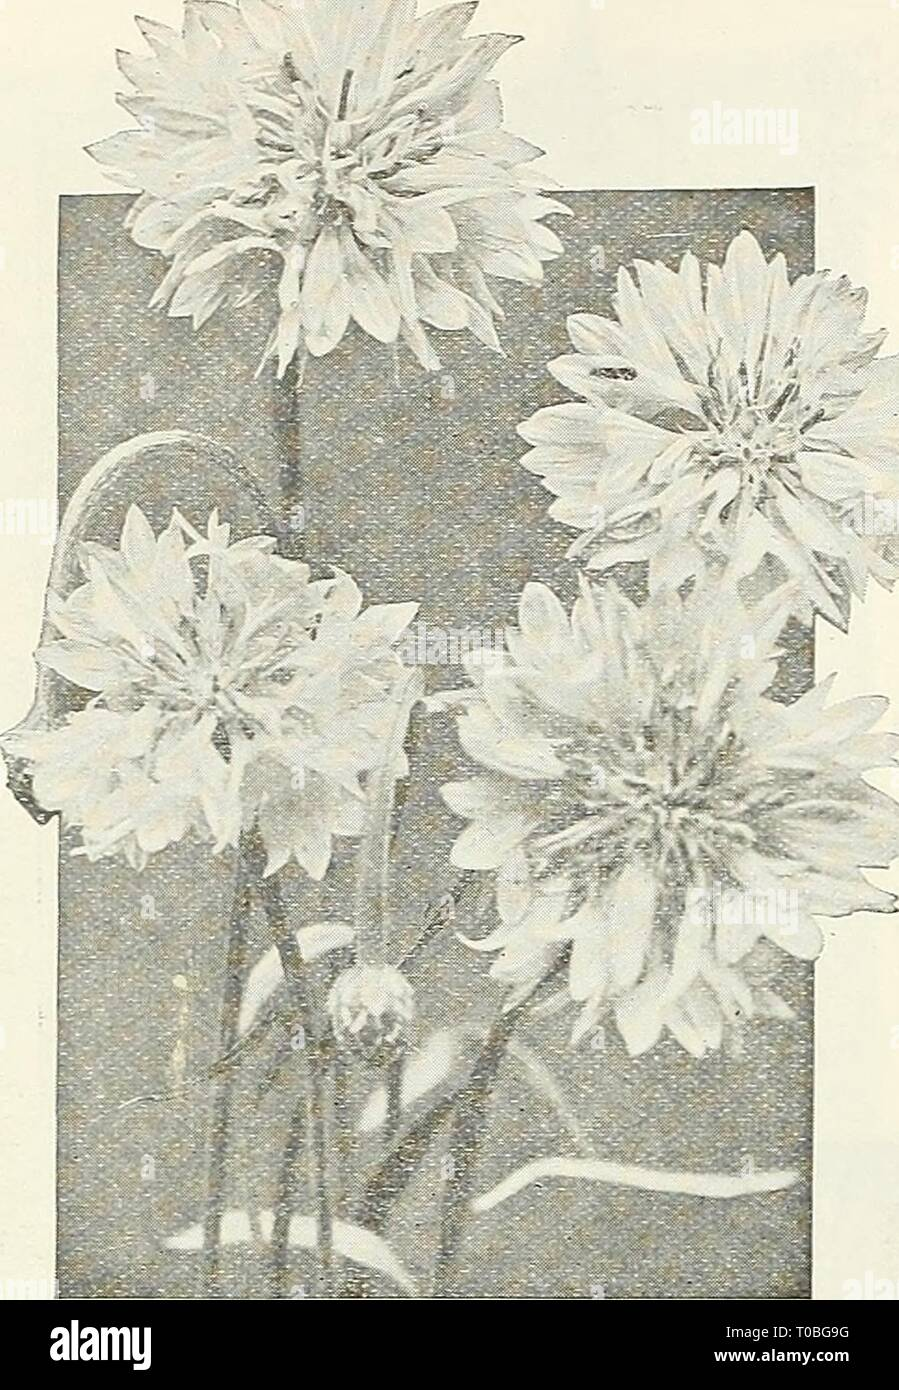 Dreer's garden book 1926 (1926) Dreer's garden book 1926 dreersgardenbook1926henr Year: 1926  78 /flEWyAJREE^ RELIABLE FLOWER SEEDS >HlMllEIiPM    D..' I 11, r I M a ',L  (. Y .xus (Cornflower) Centaurea Imperialis (Royal Sweet Sultans) This beautiful class is undoubtedly the finest of all Sweet Sultans for cut-flower purposes. The charming, sweet-scented, artistic- shaped flowers are borne on long, strong stems and when cut will stand for several days in good condition. It is best, in this latitude, to sow very early in the spring, so that they may perfect their flowers before very hot we Stock Photo